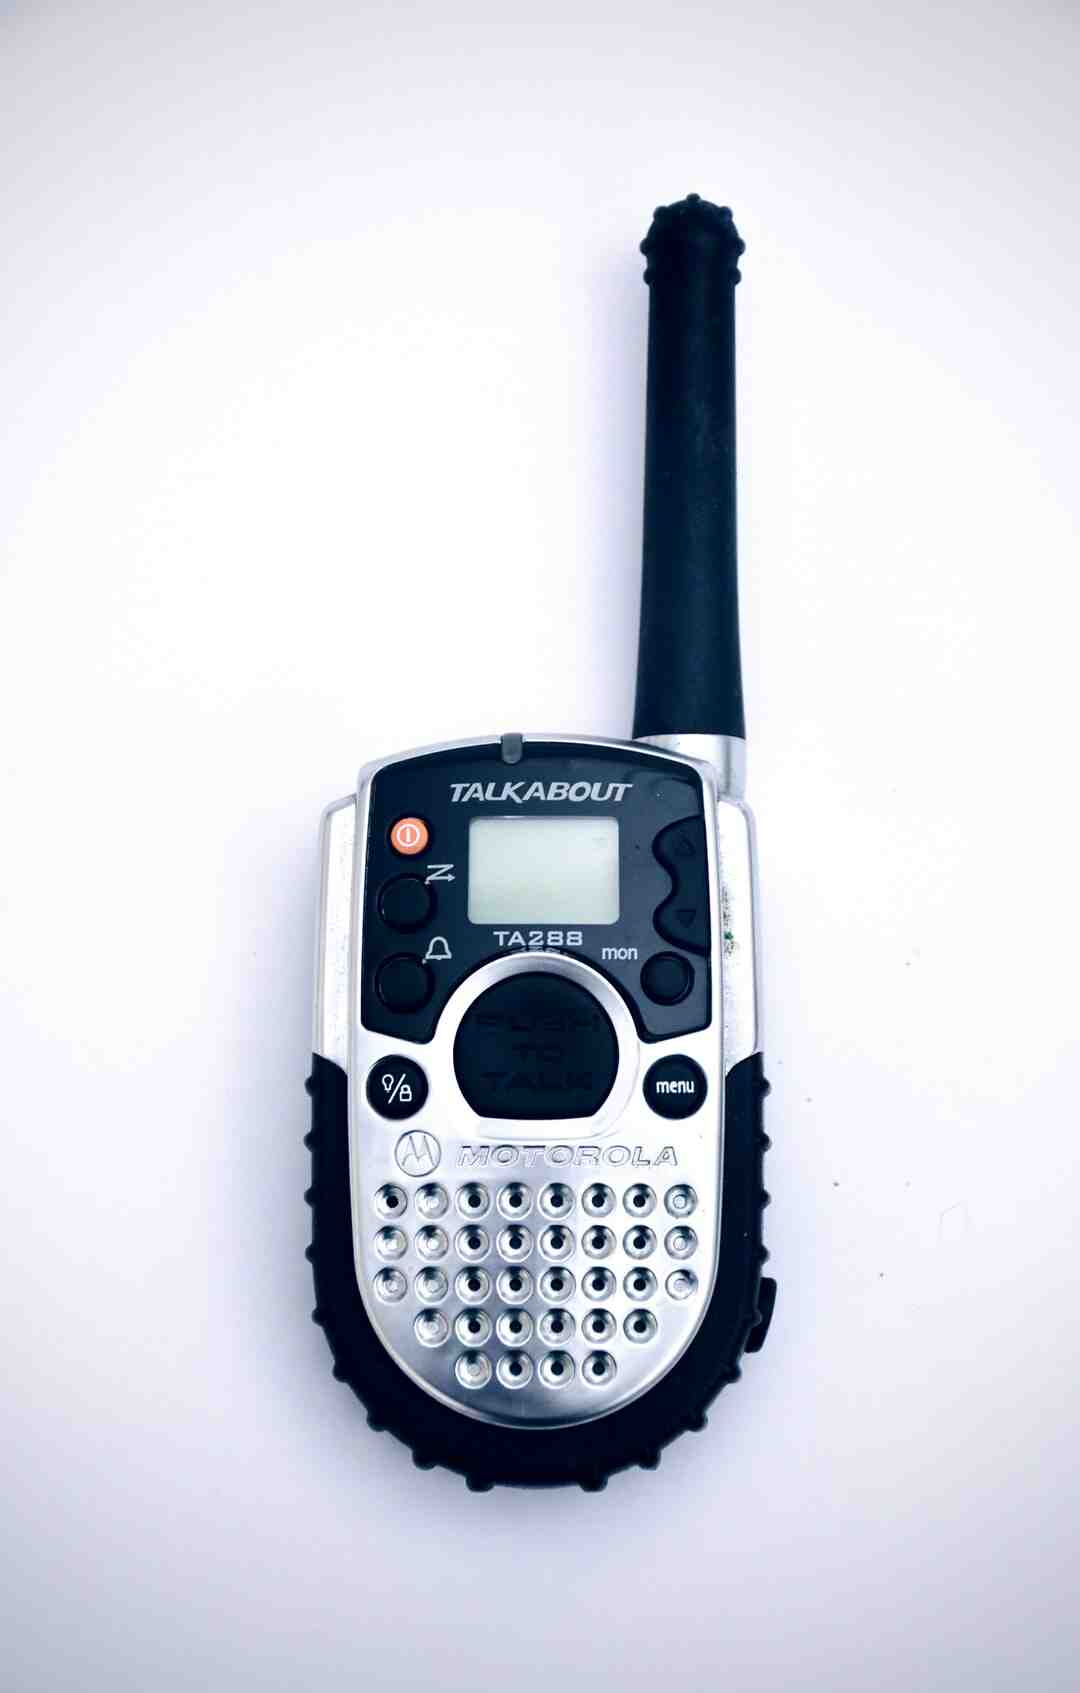 What can I use instead of a walkie-talkie?